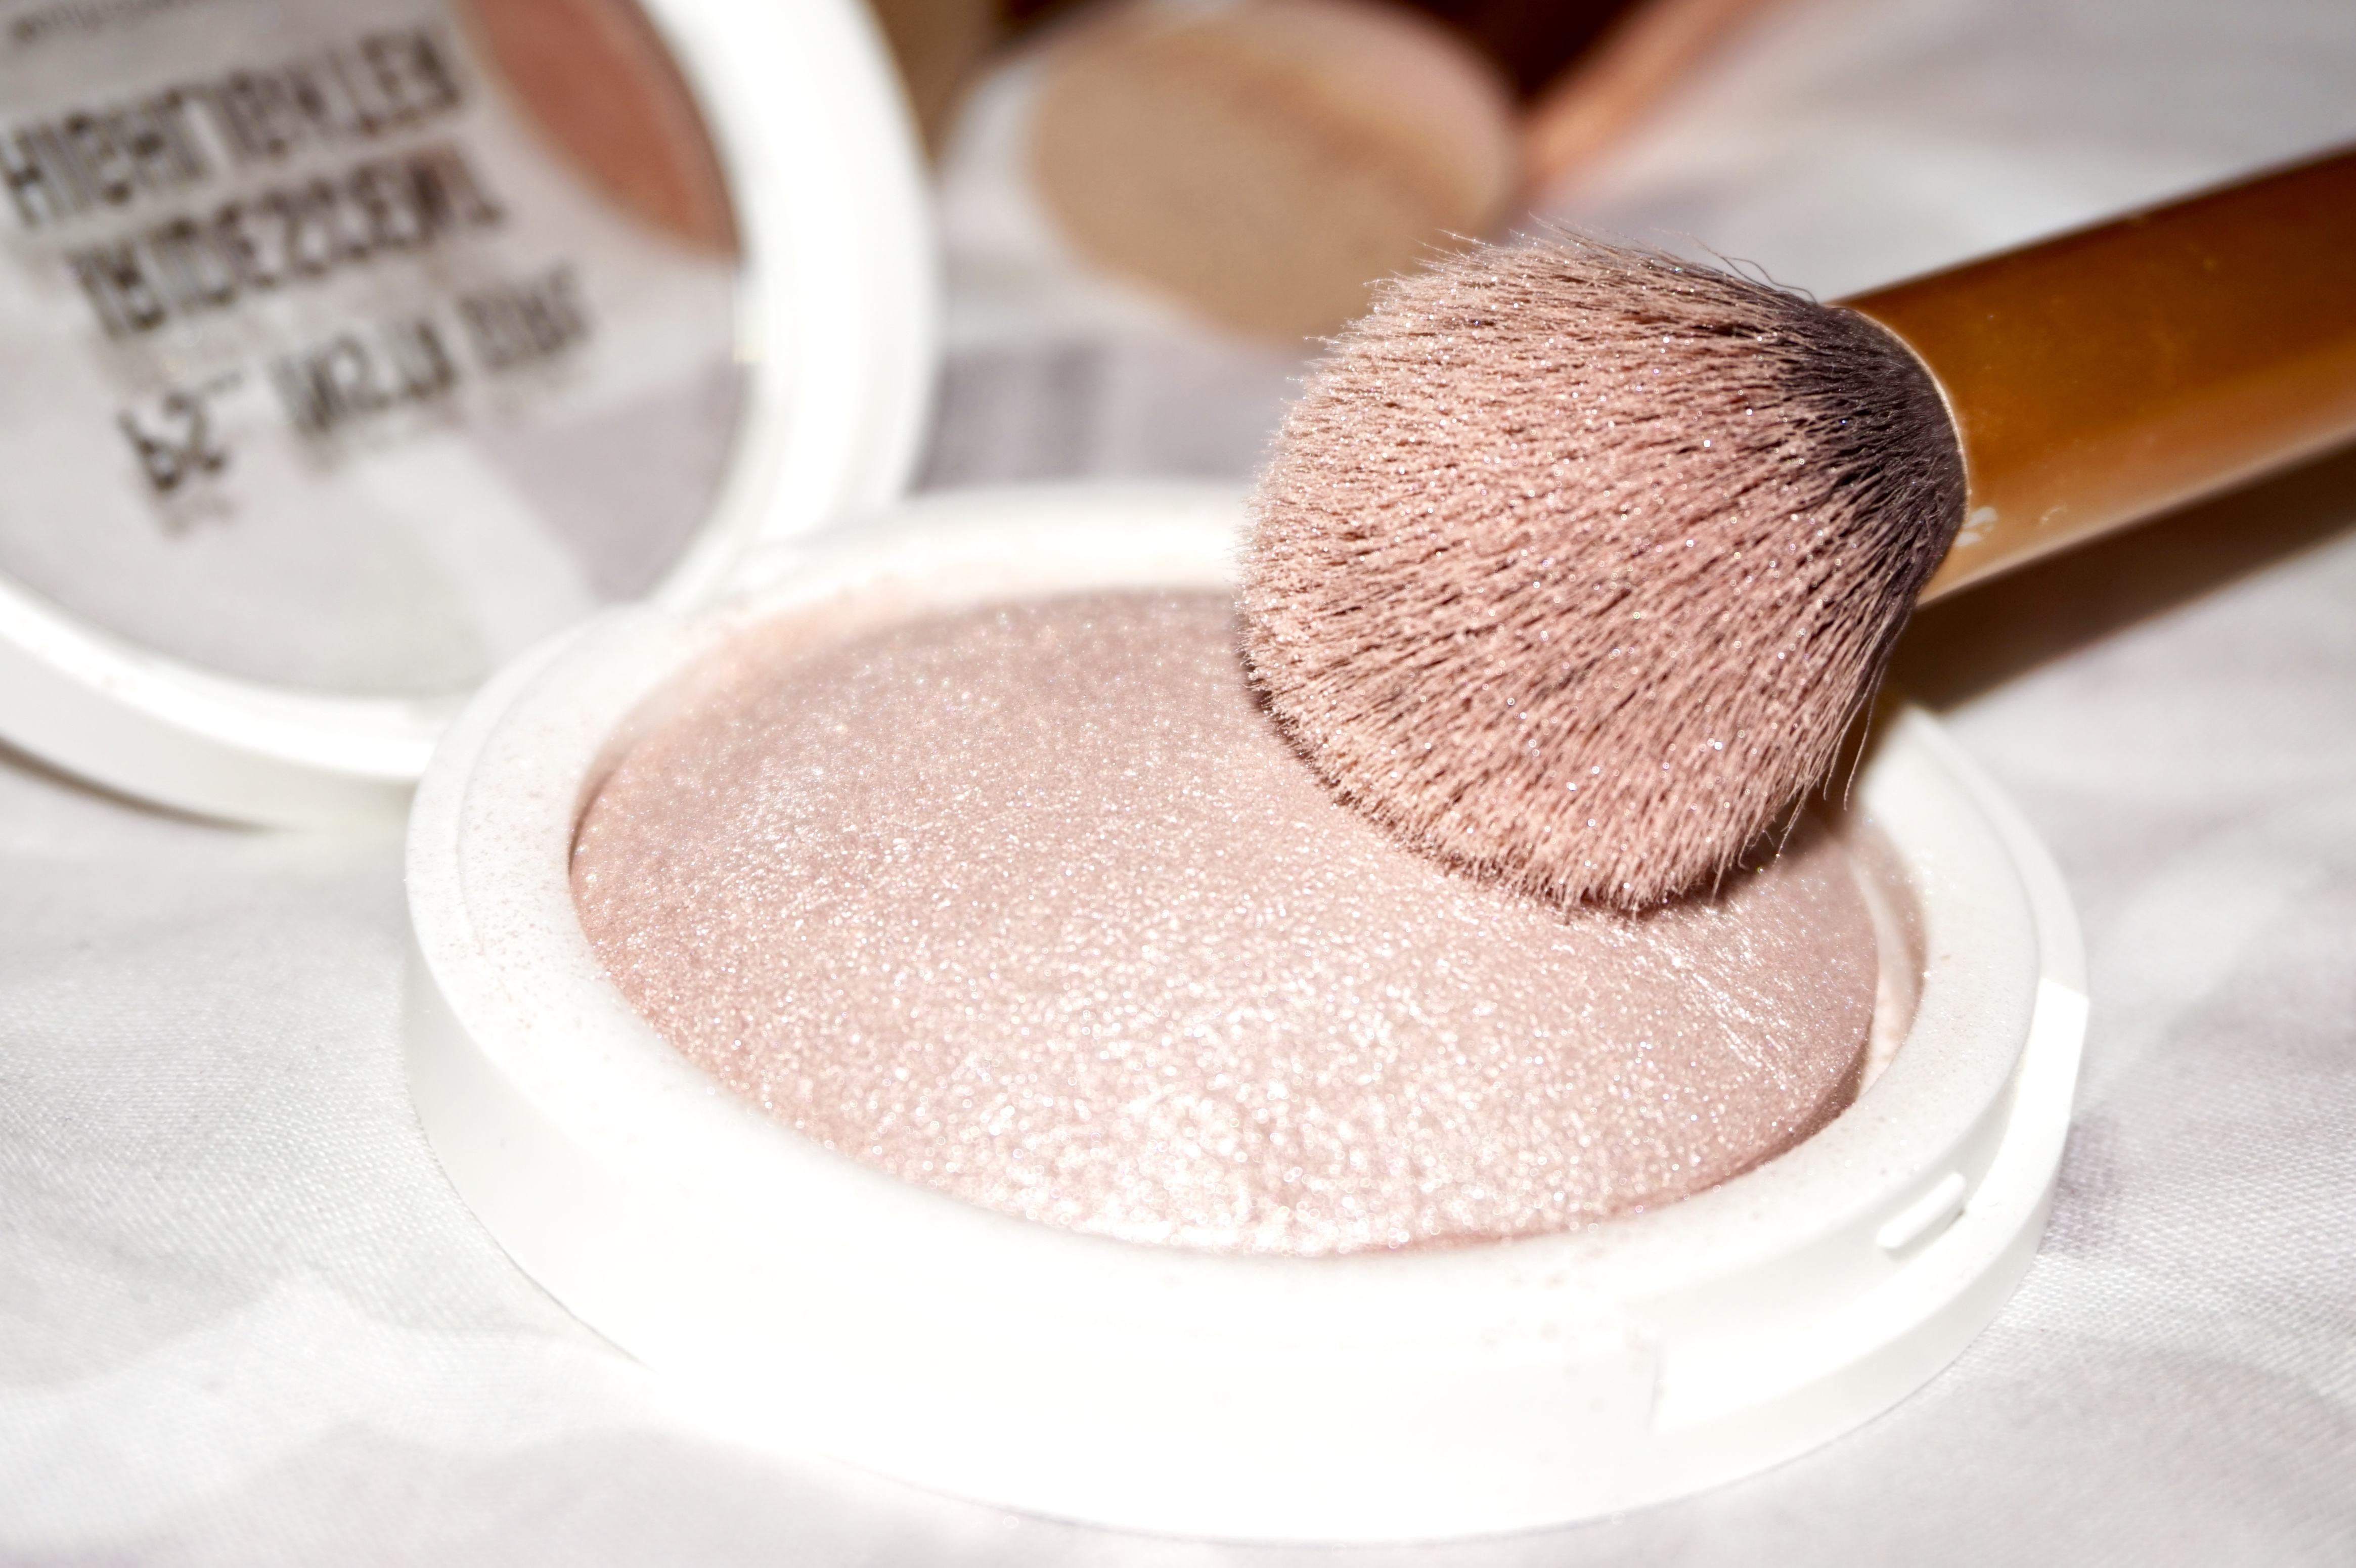 splash of glam make-up highlighter